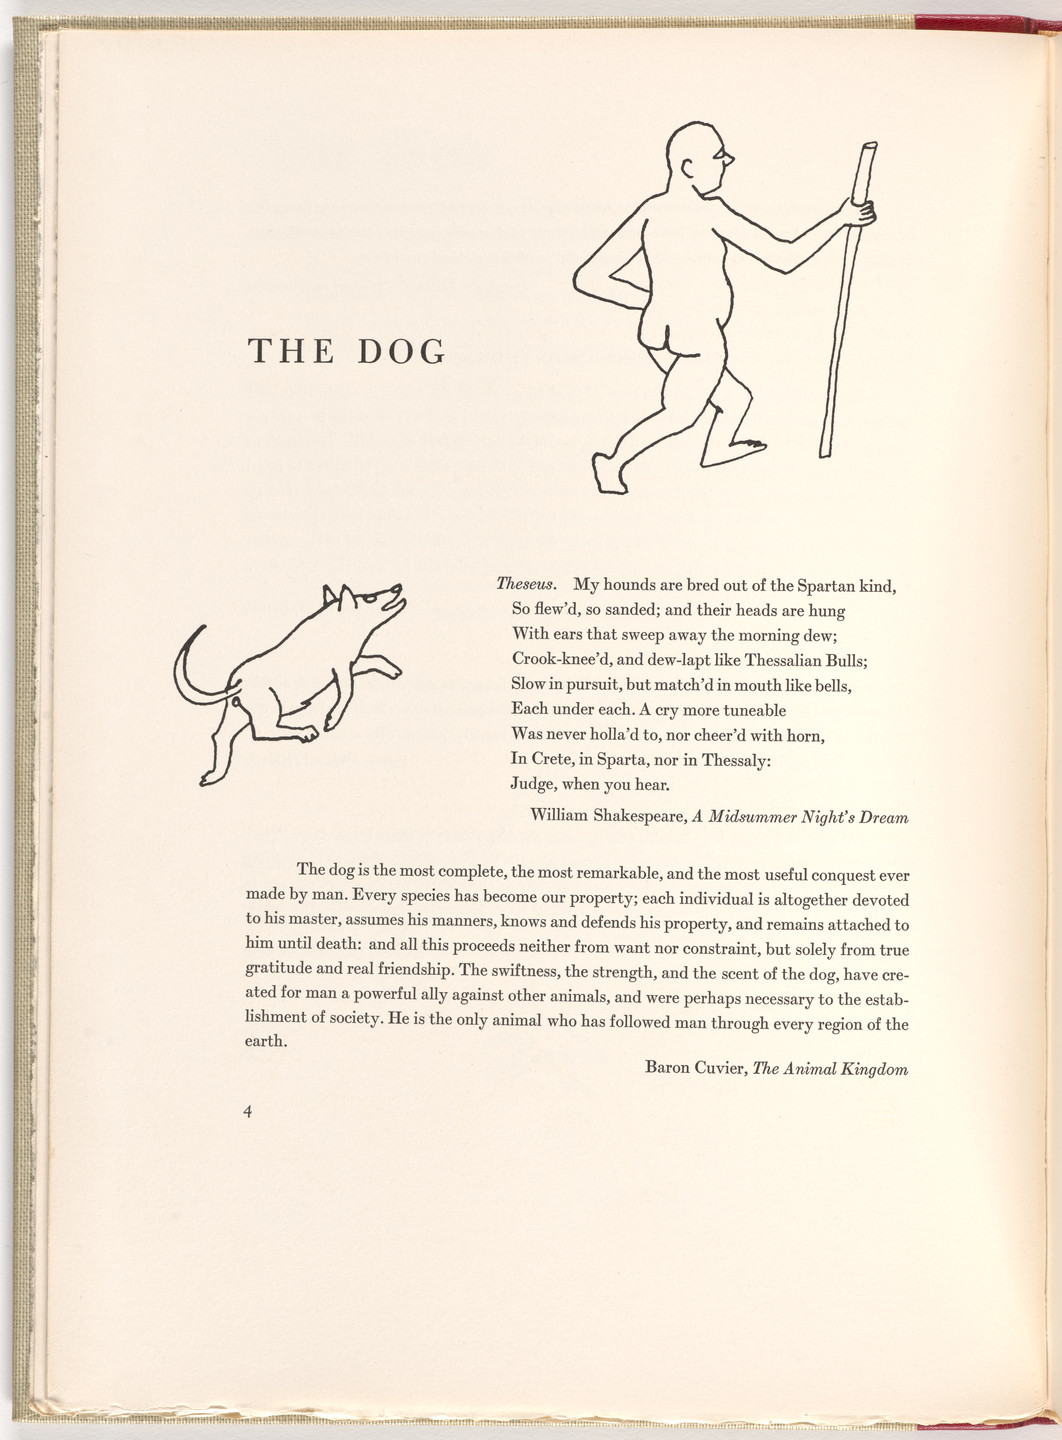 Alexander Calder. In-text plate (page 4) from A Bestiary. 1955